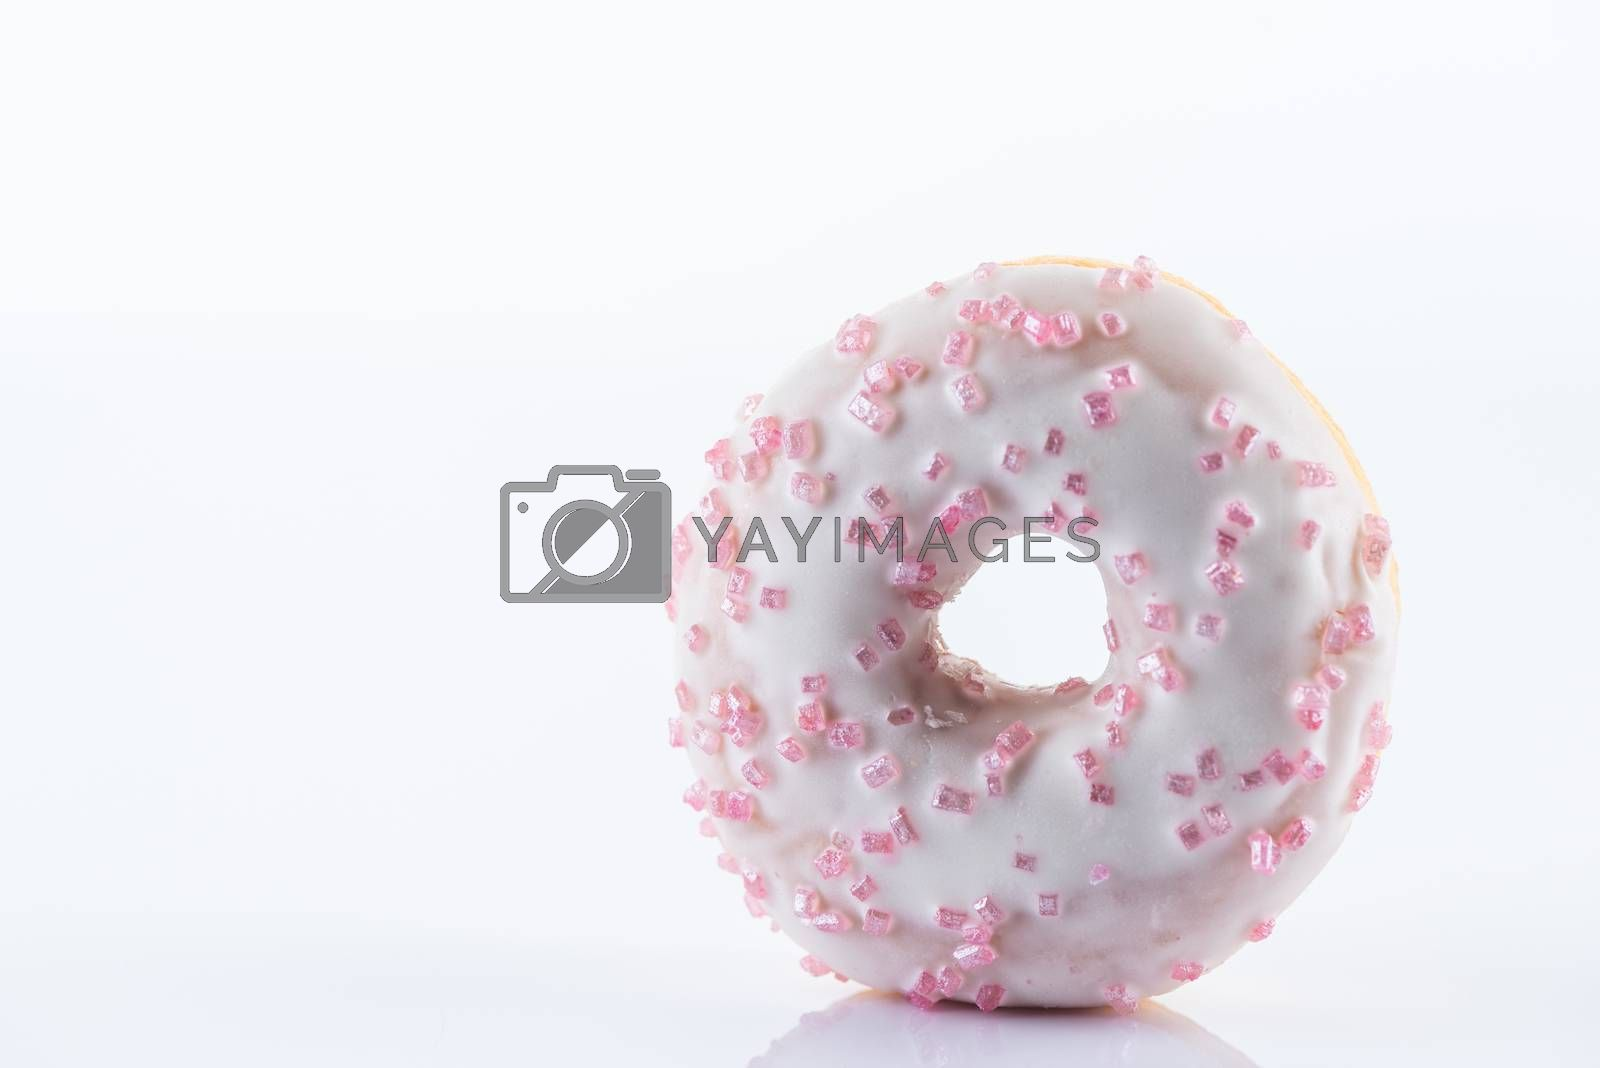 Single White Chocolate Donut or Doughnut. Studio Photo on White Background, Close Up view.